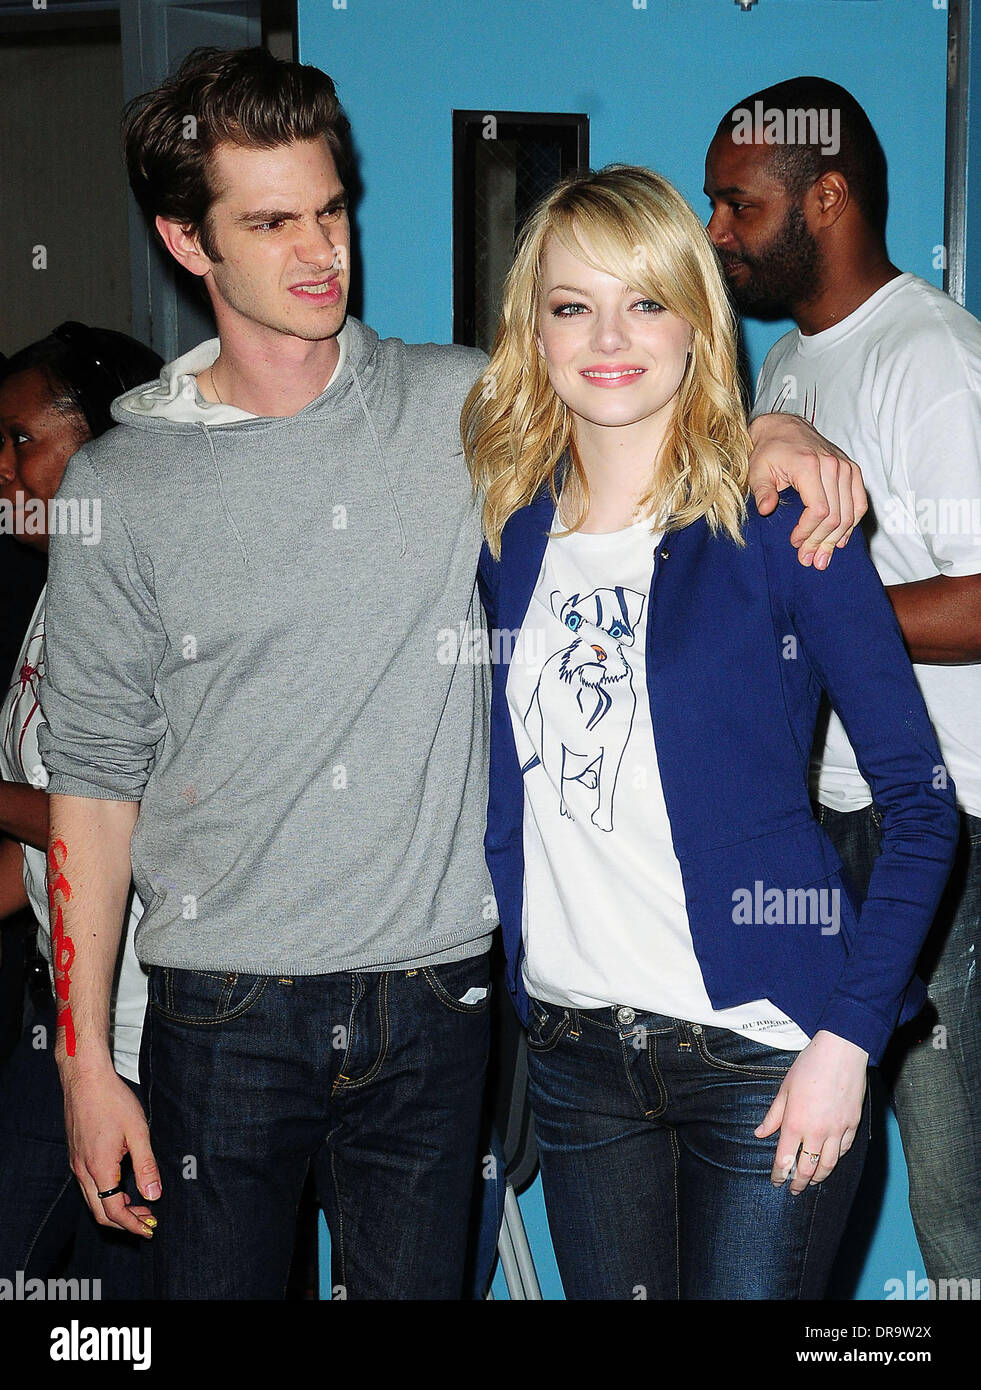 Andrew Garfield, Emma Stone The cast of 'The Amazing Spider